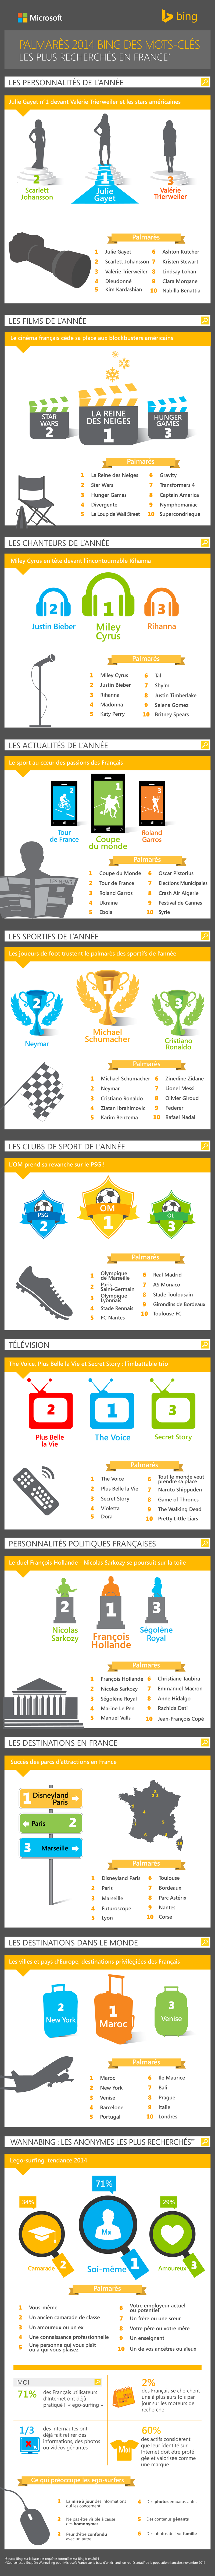 infographie-bing-mots-cles-2014